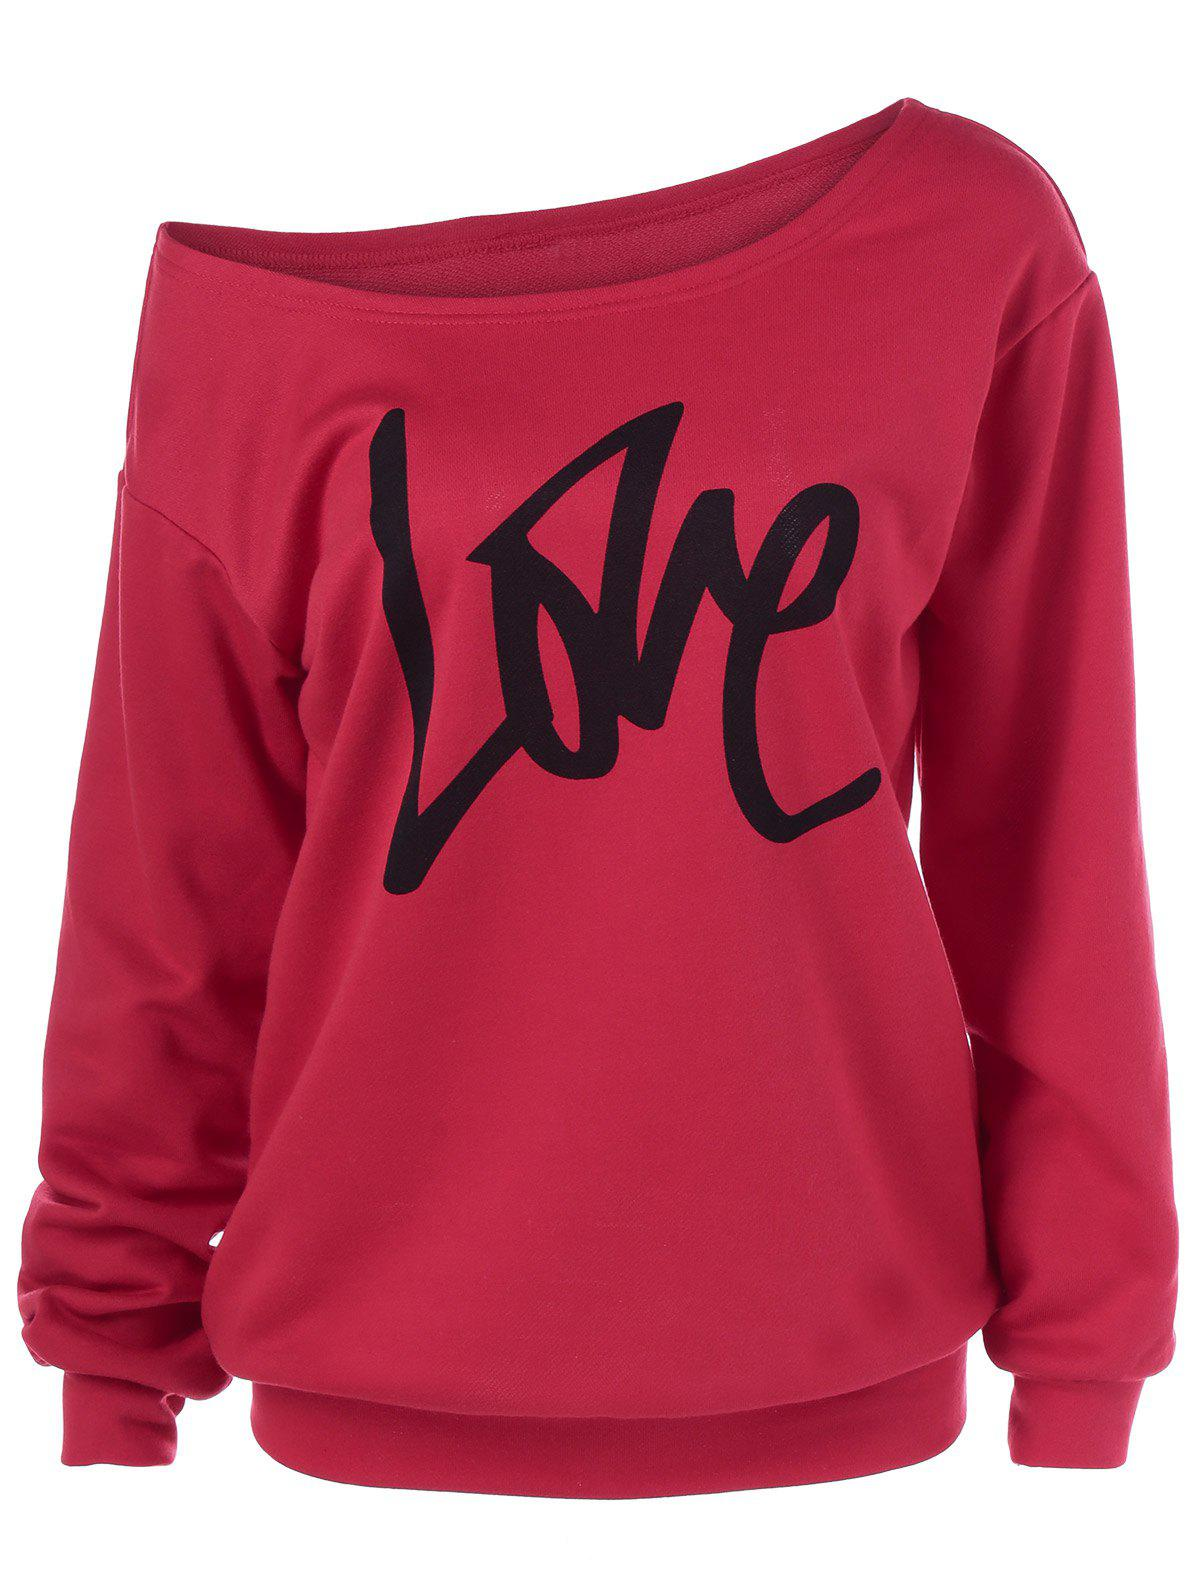 Skew Collar Love Plus Size SweatshirtWOMEN<br><br>Size: 3XL; Color: RED; Material: Polyester; Shirt Length: Regular; Sleeve Length: Full; Style: Casual; Pattern Style: Letter; Season: Fall,Spring; Weight: 0.3800kg; Package Contents: 1 x Sweatshirt;